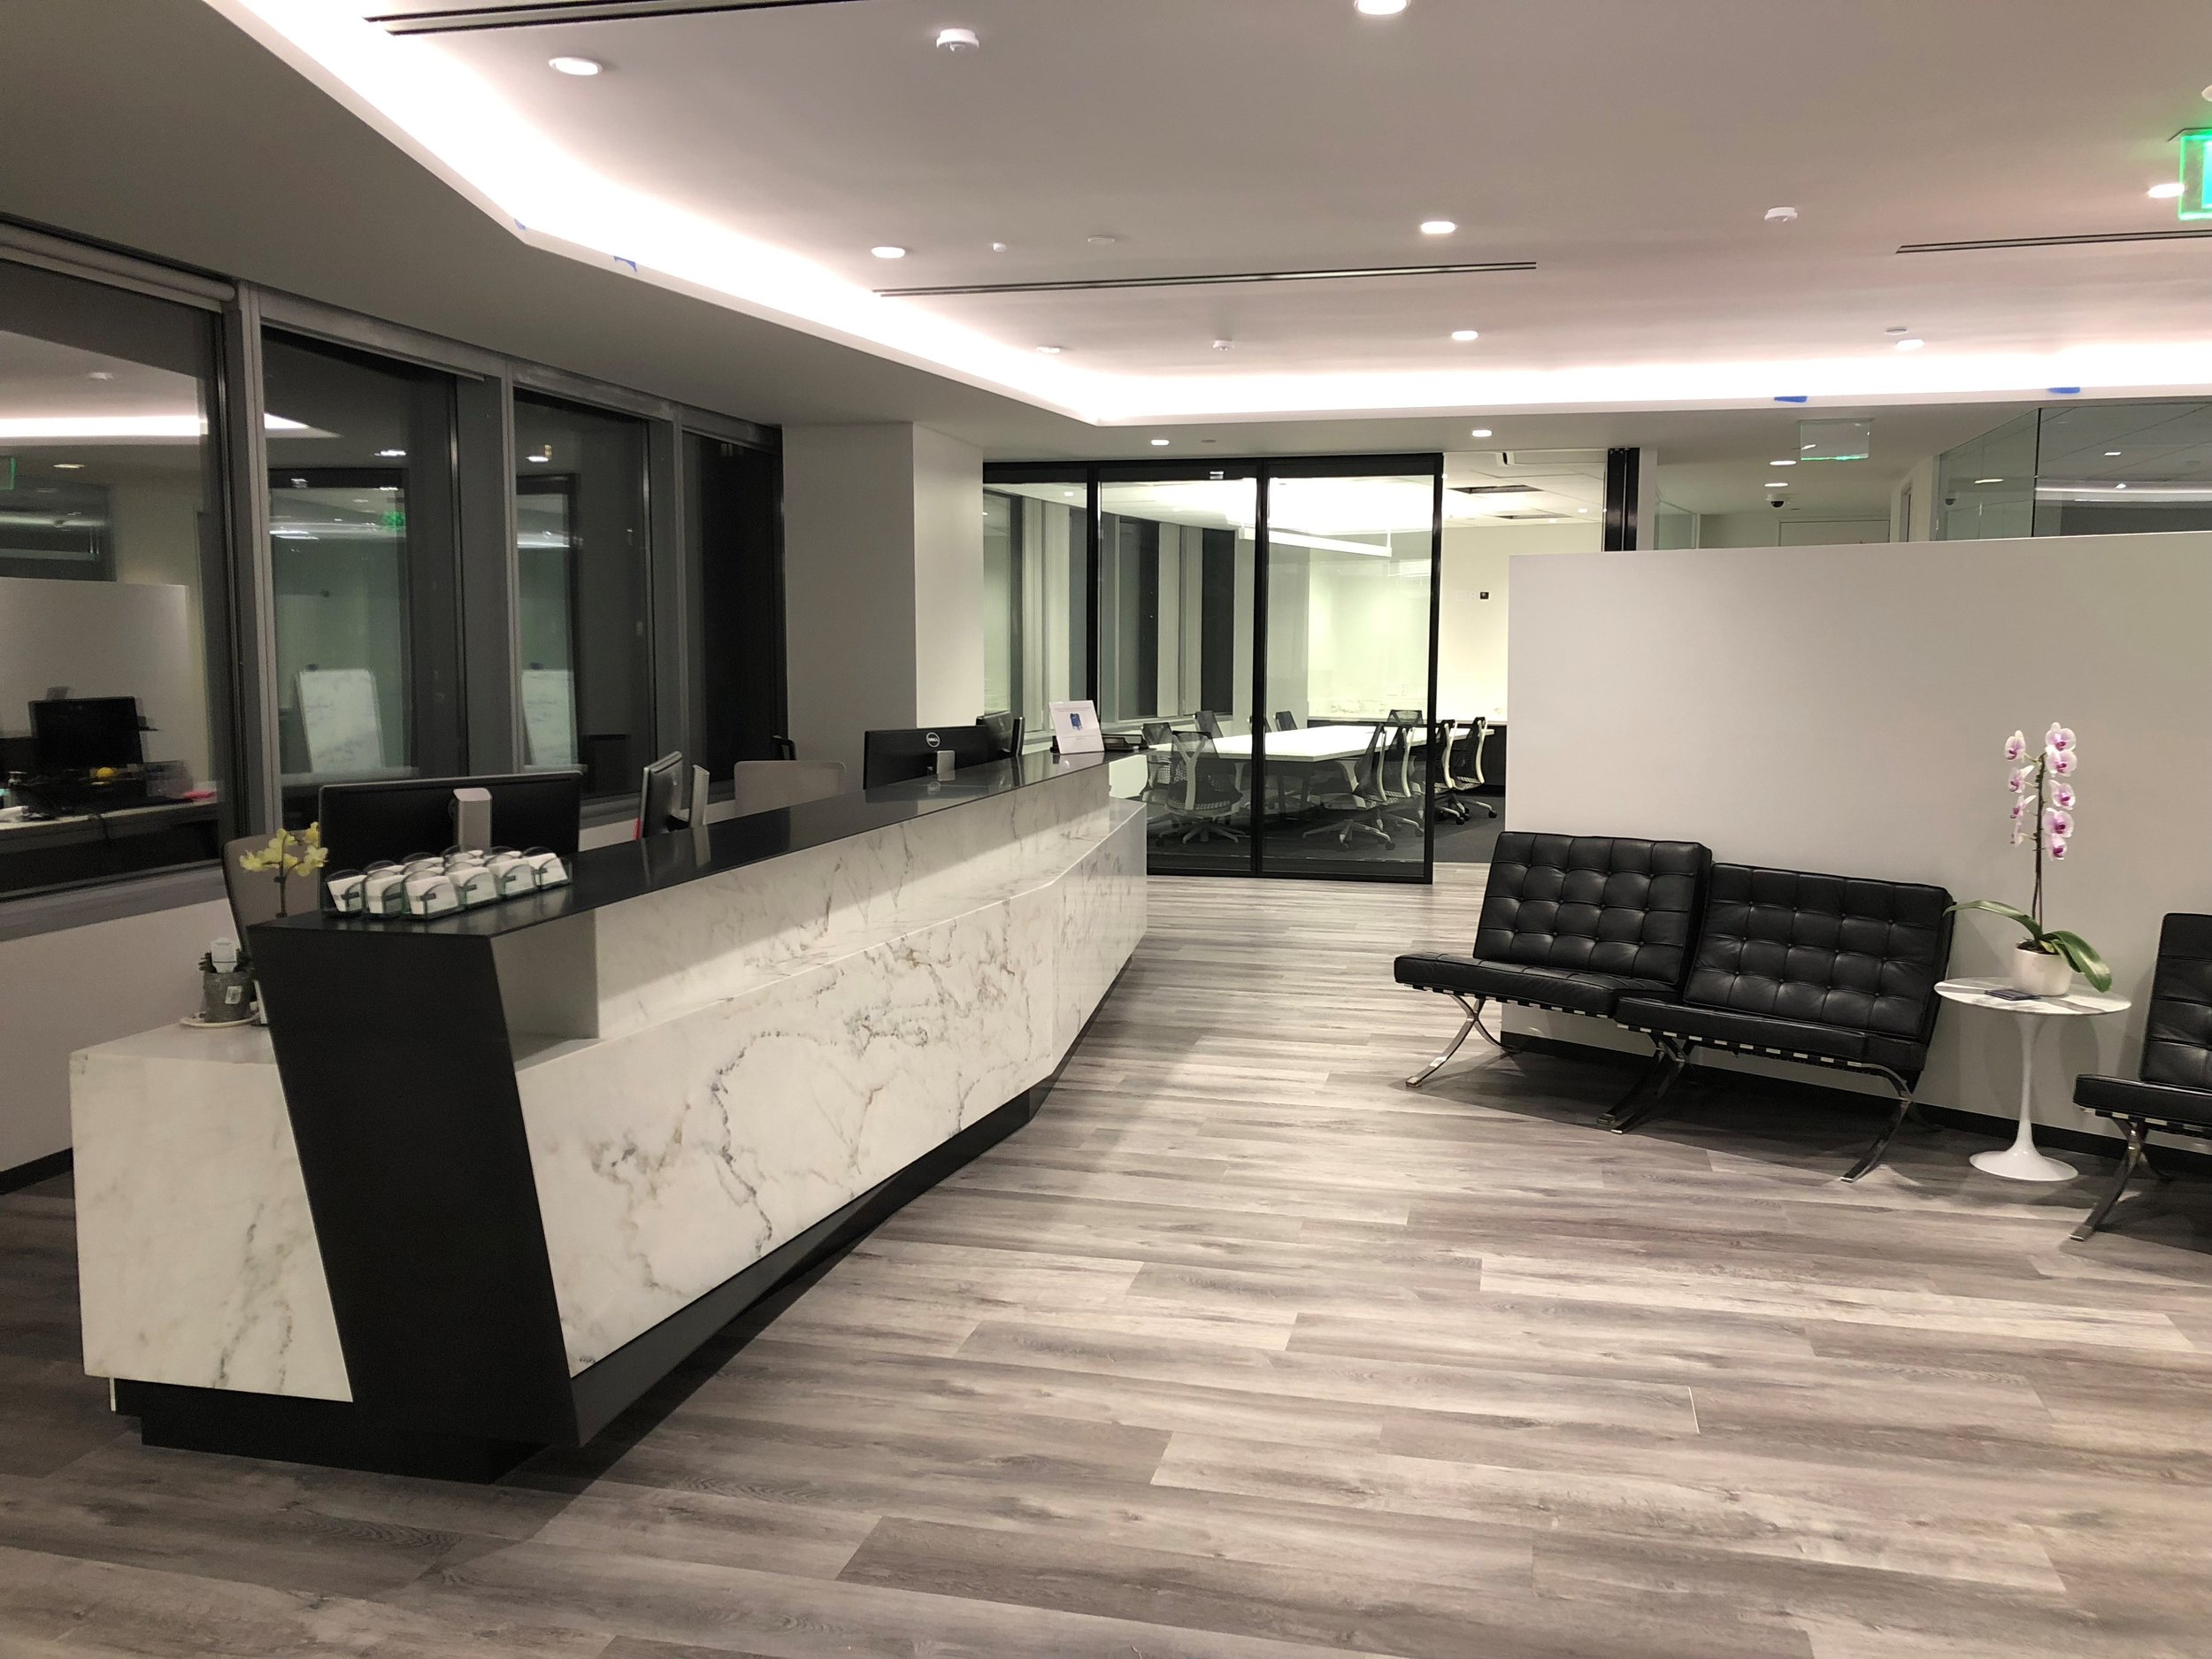 Knight Law Group 46,000 SF complete 10/2018